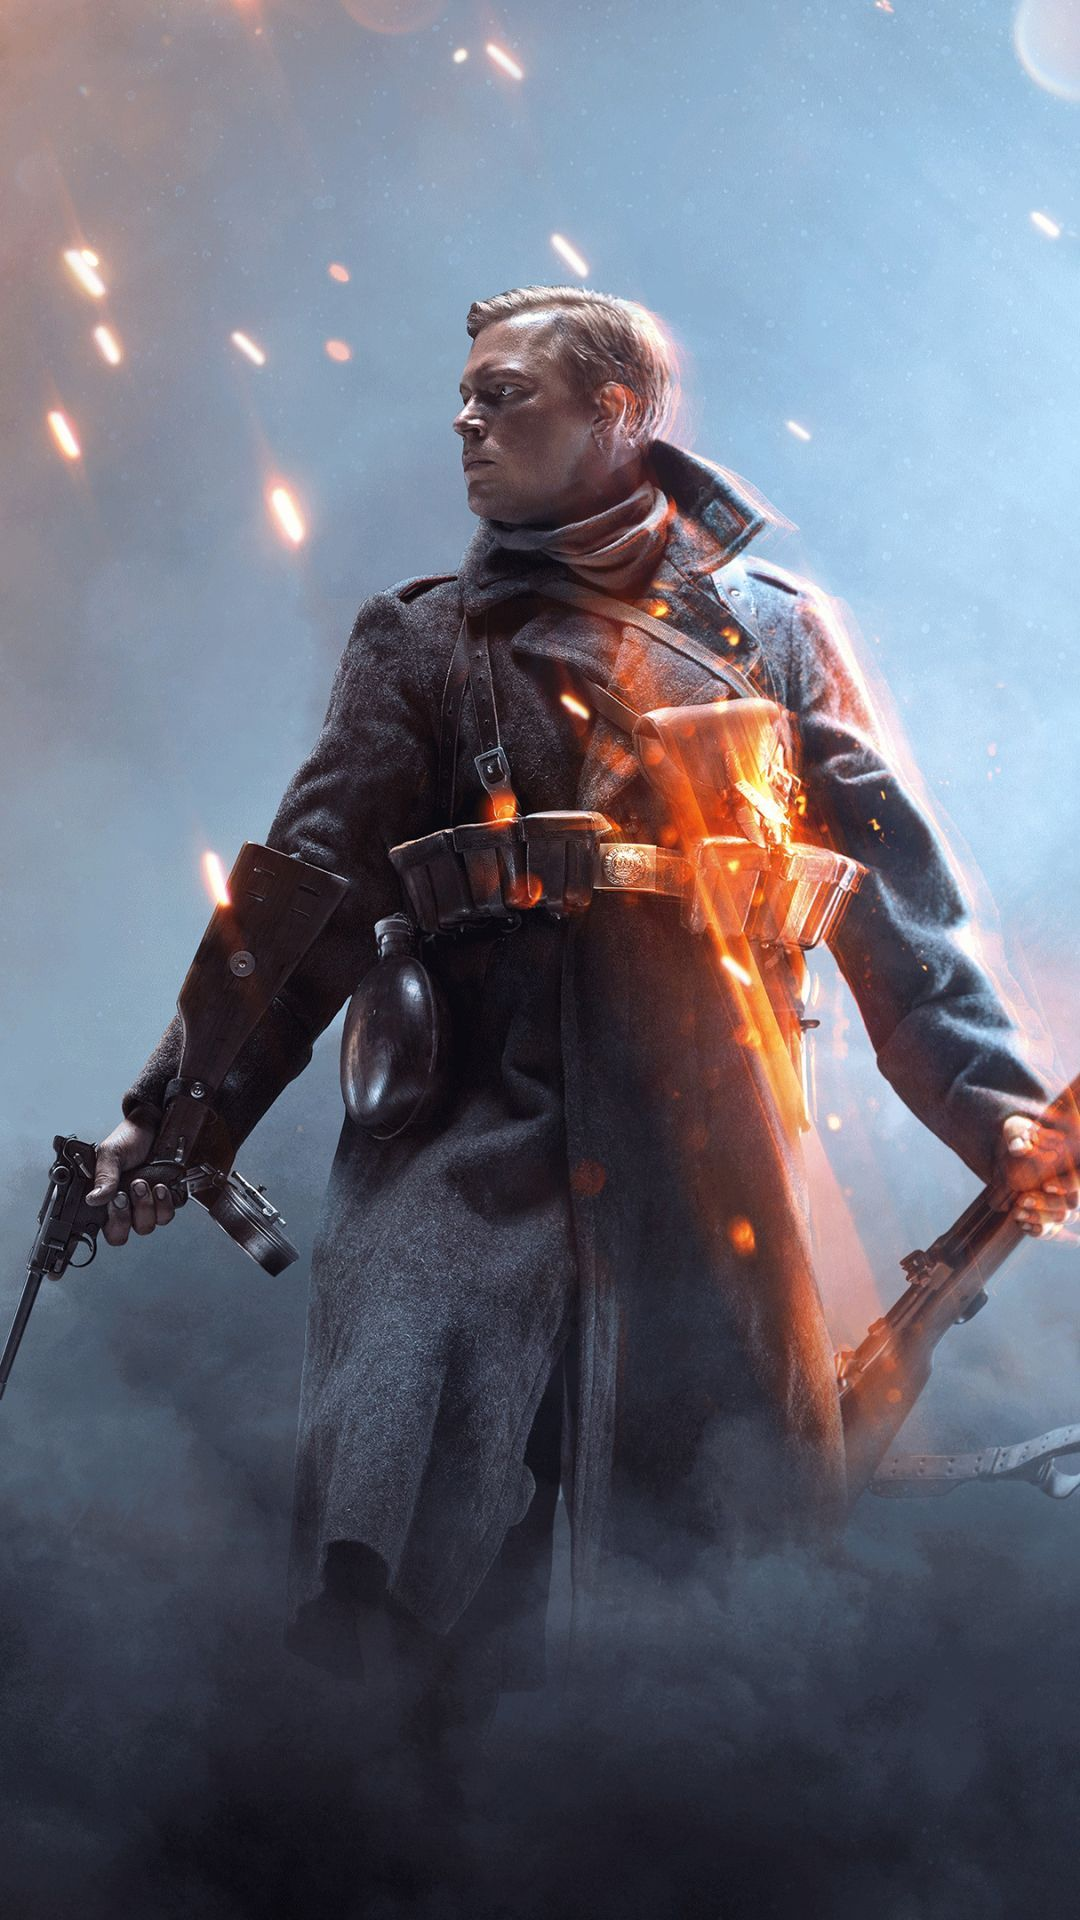 1080x1920 Download this Wallpaper iPhone 5S - Video Game/Battlefield 1 ...